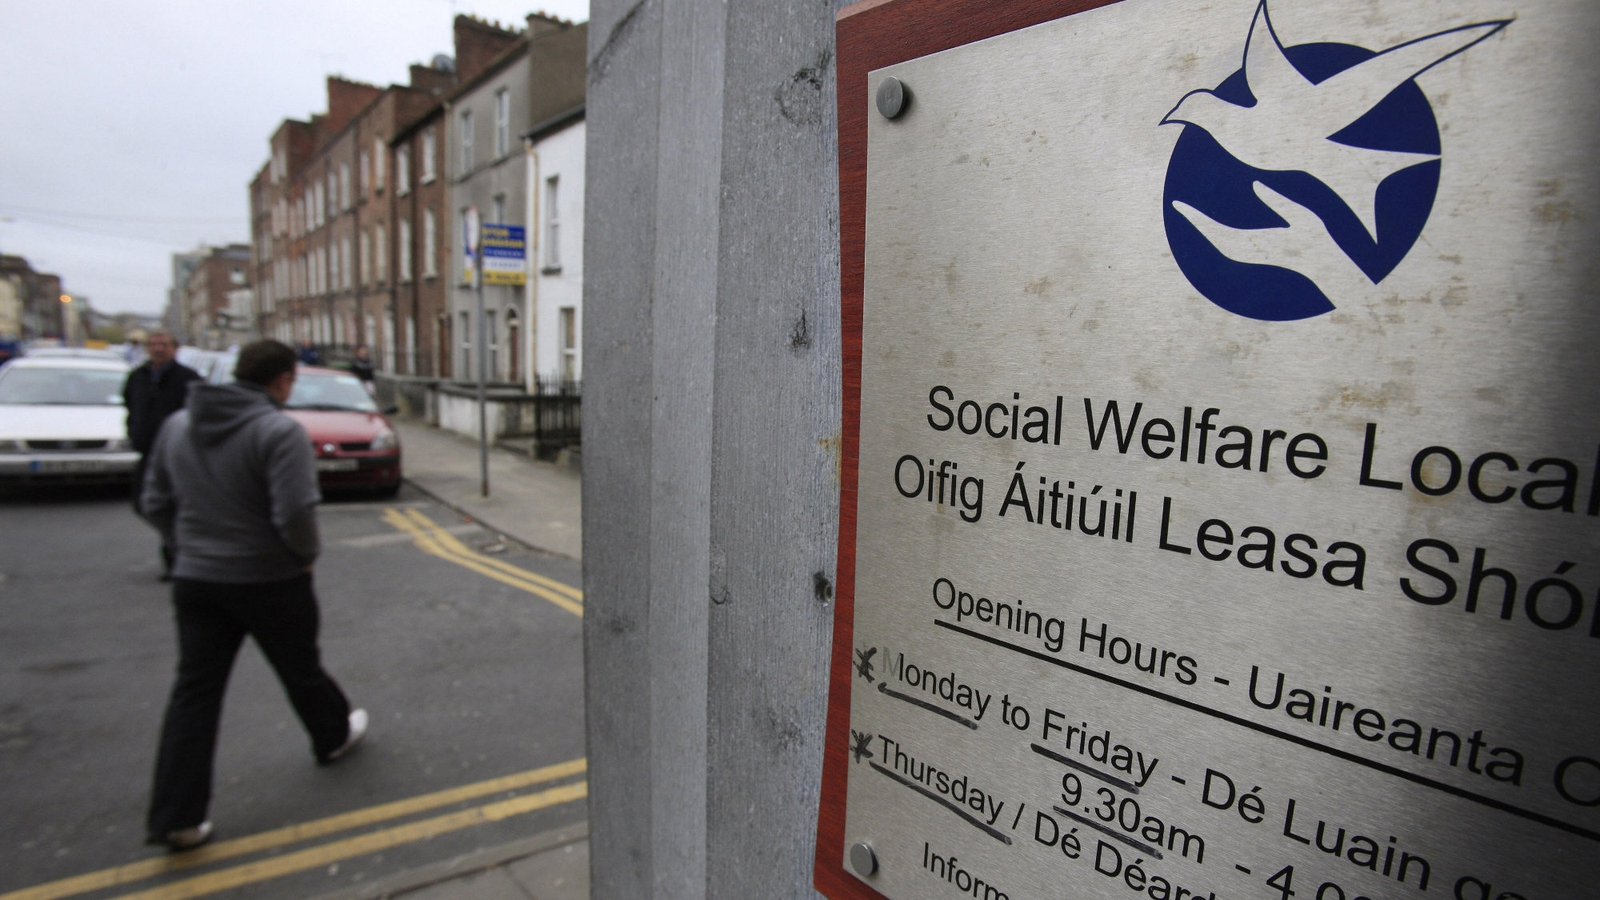 More than 700,000 receiving welfare supports